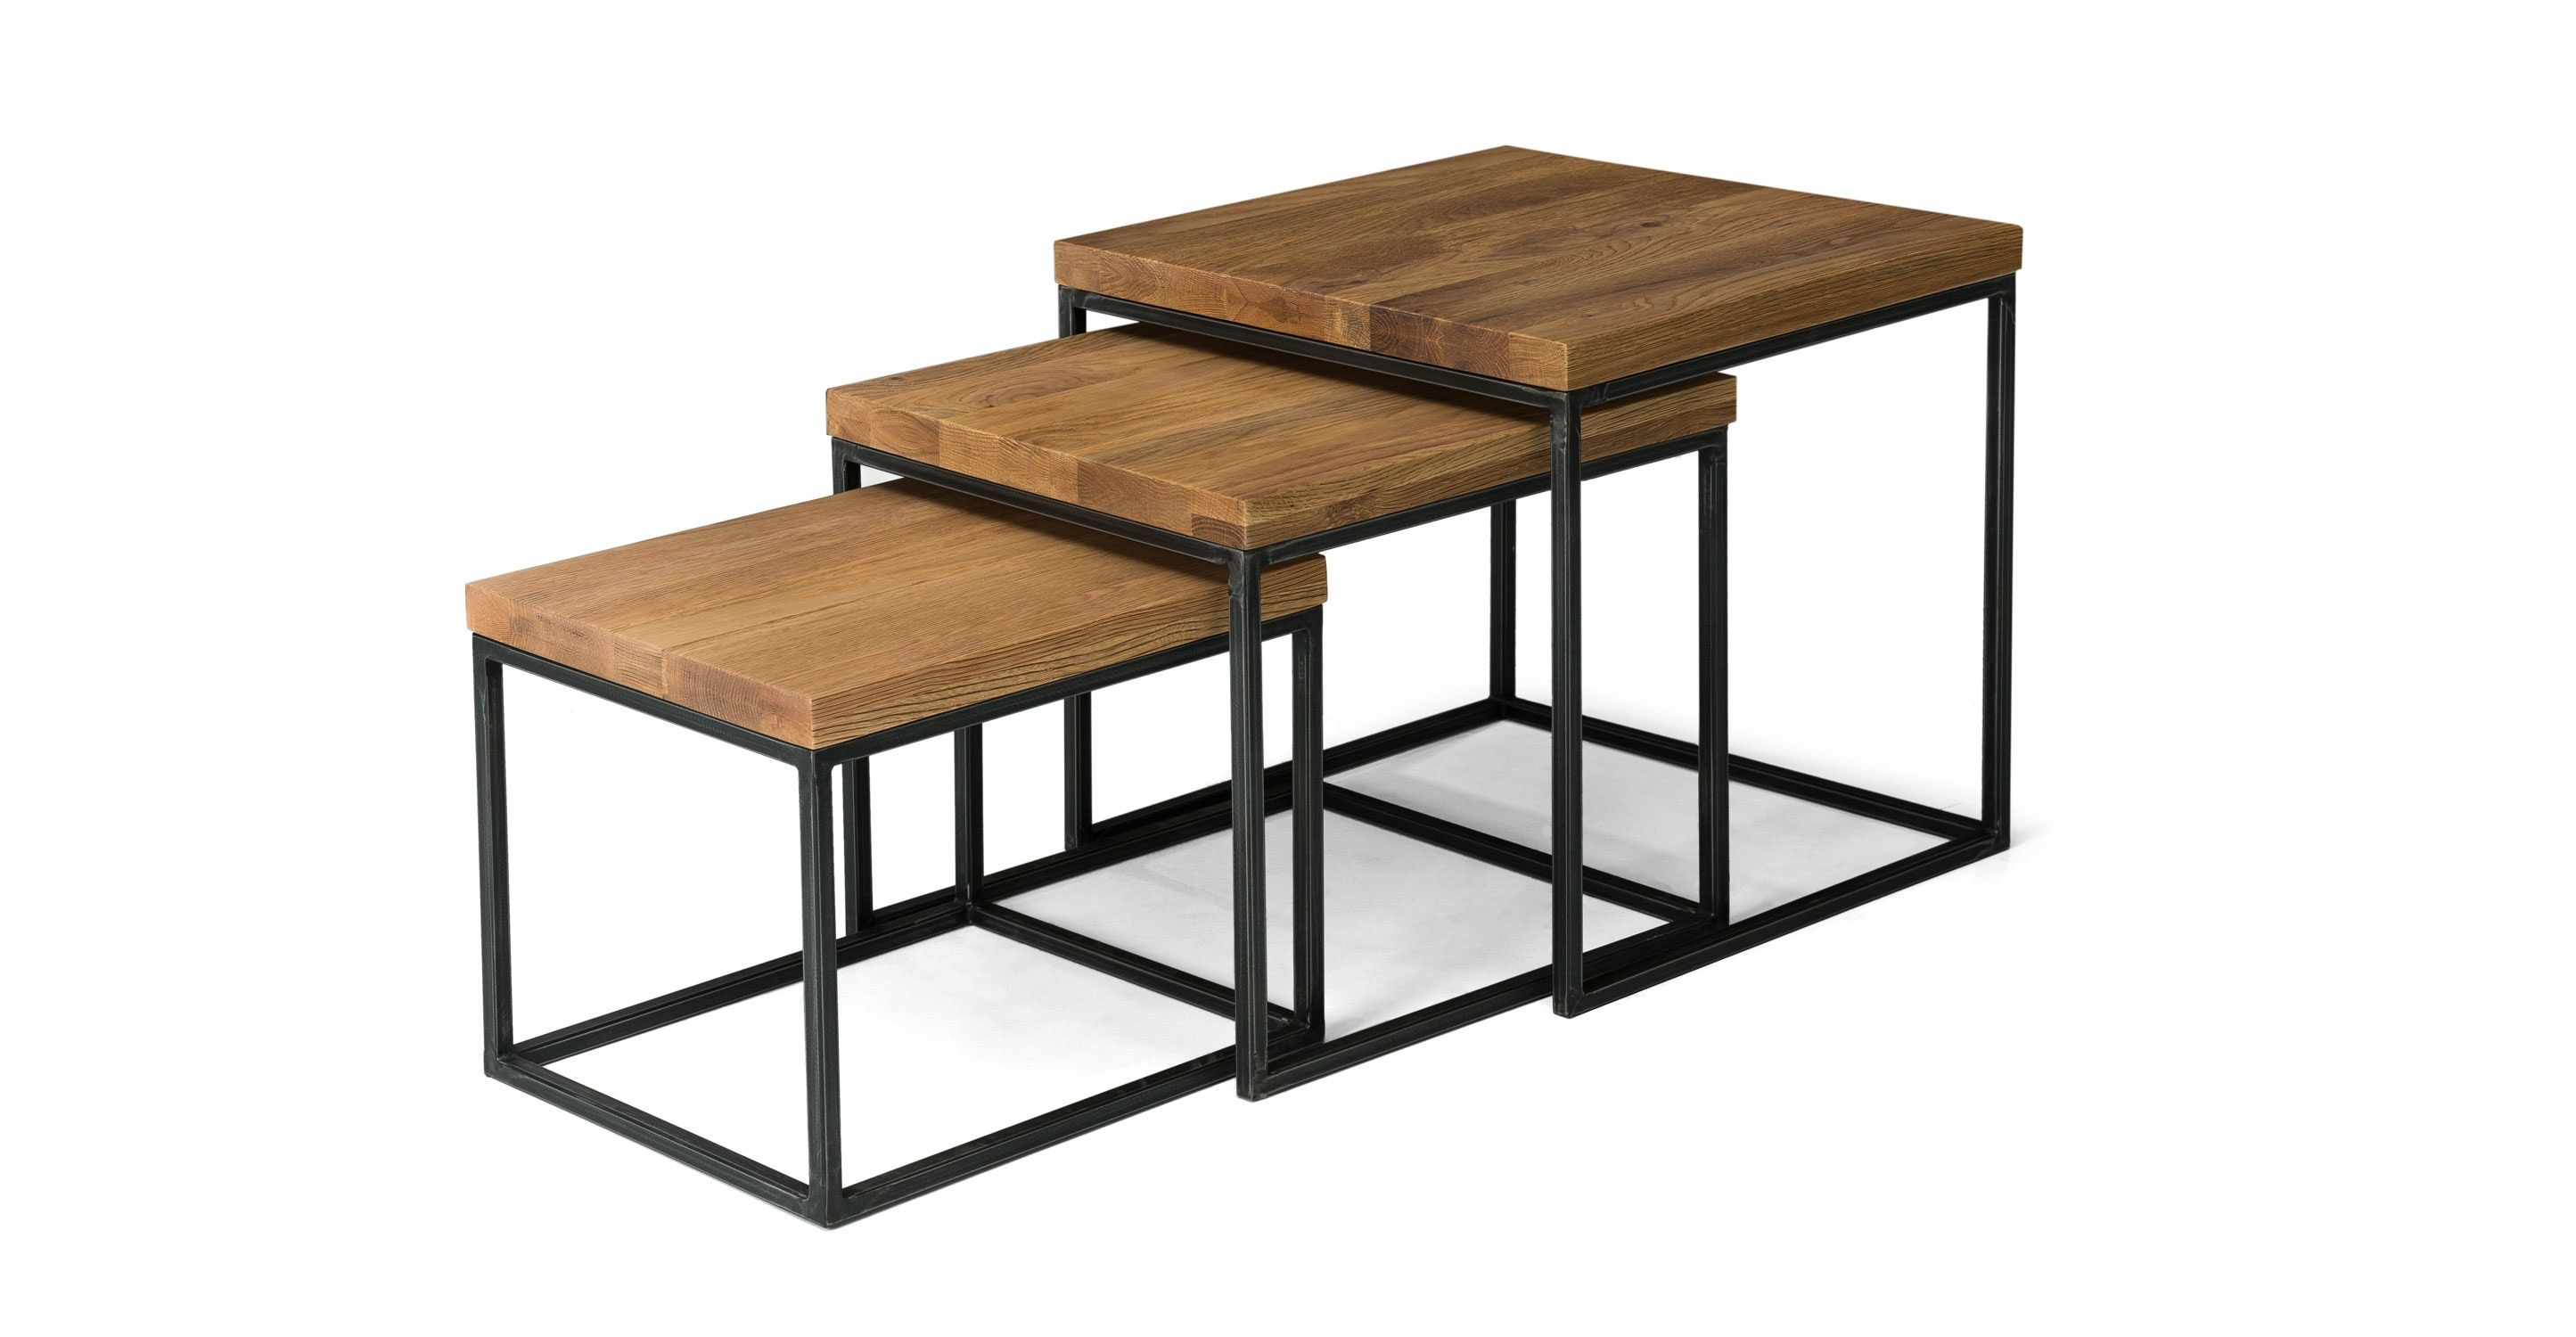 Nesting Tables In Oak Wood - Metal Legs | Article Taiga Contemporary ...